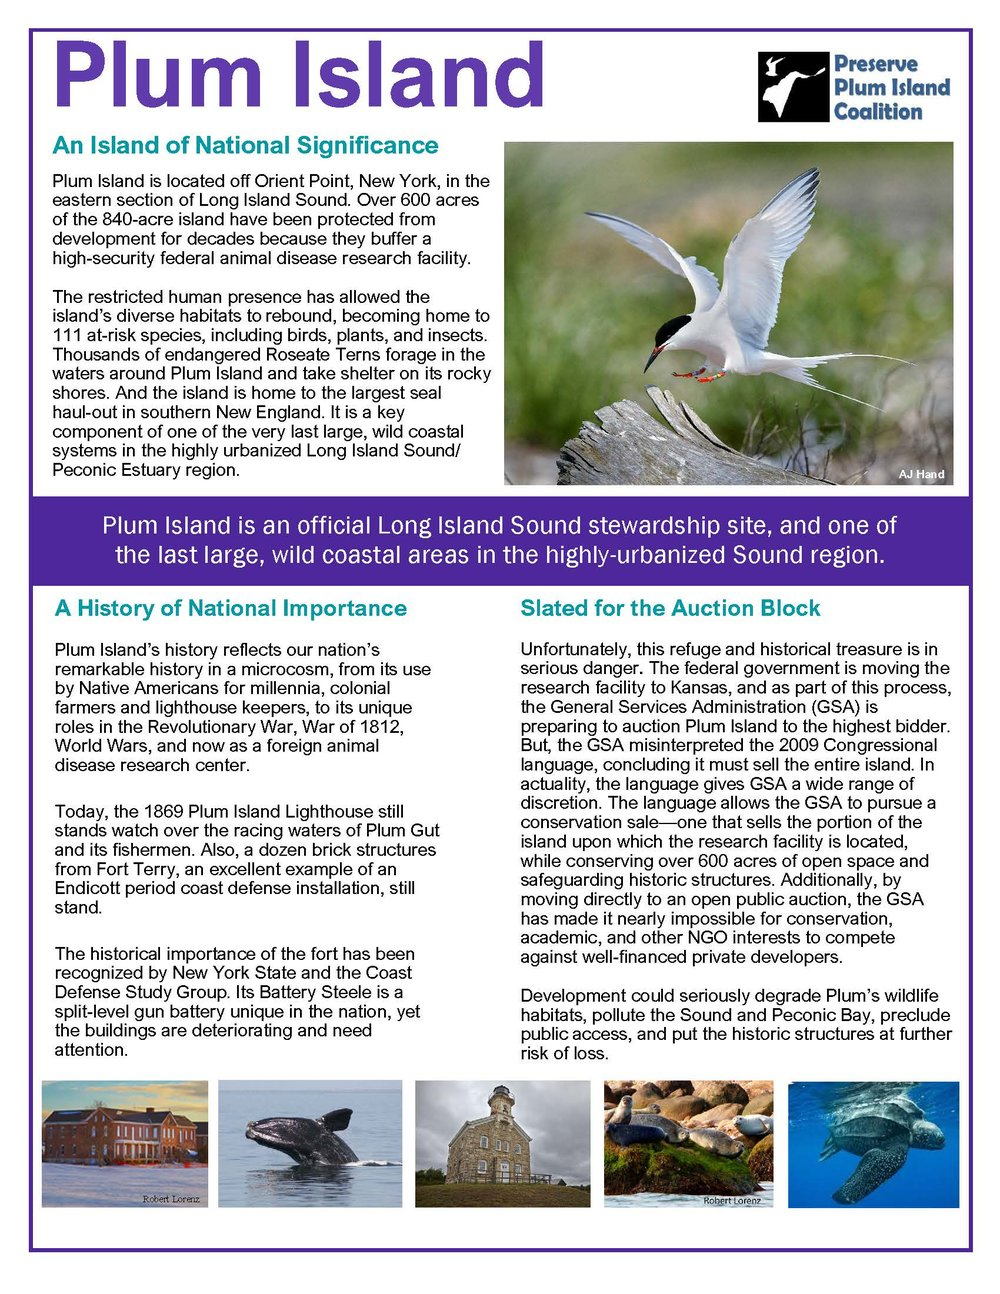 2018-11-06 Plum Island factsheet for Envision_Page_1.jpg